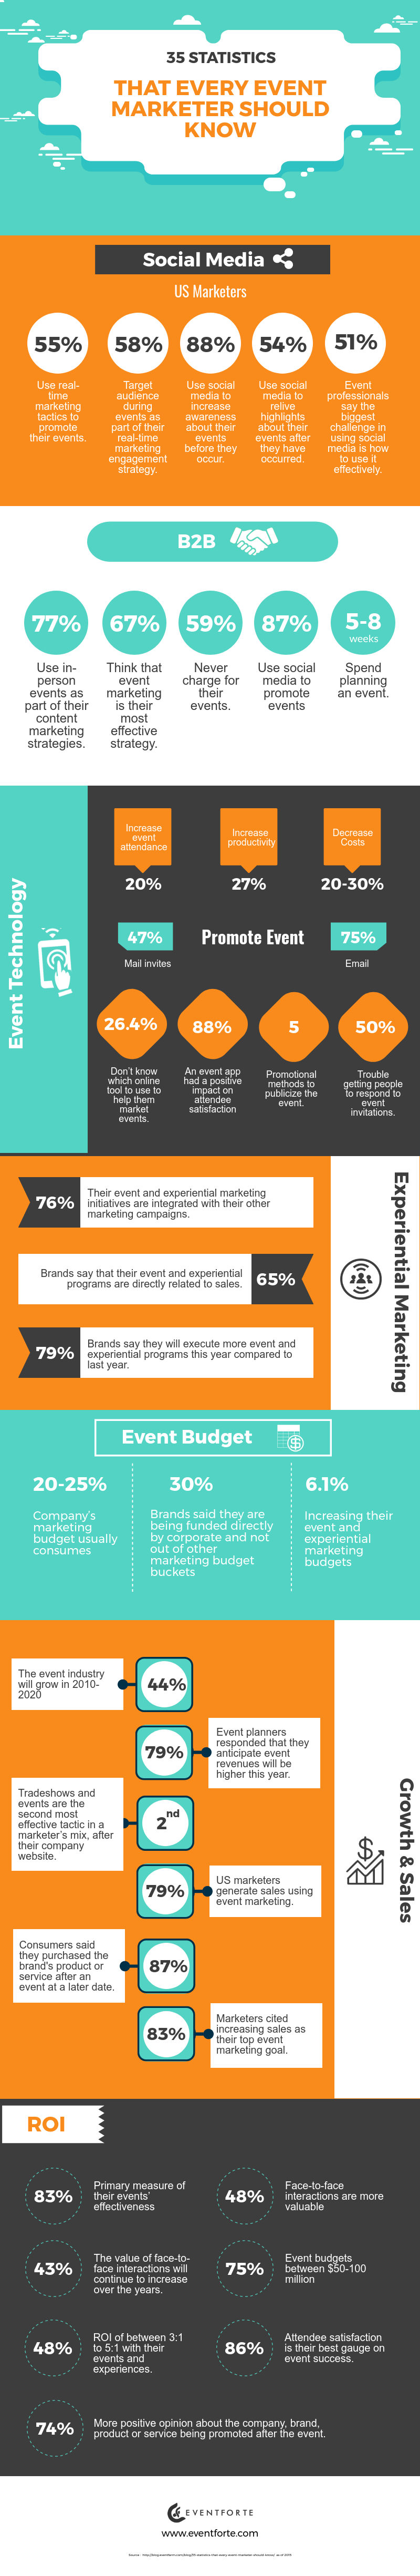 35 Statistics That Every Event Marketer Should Know